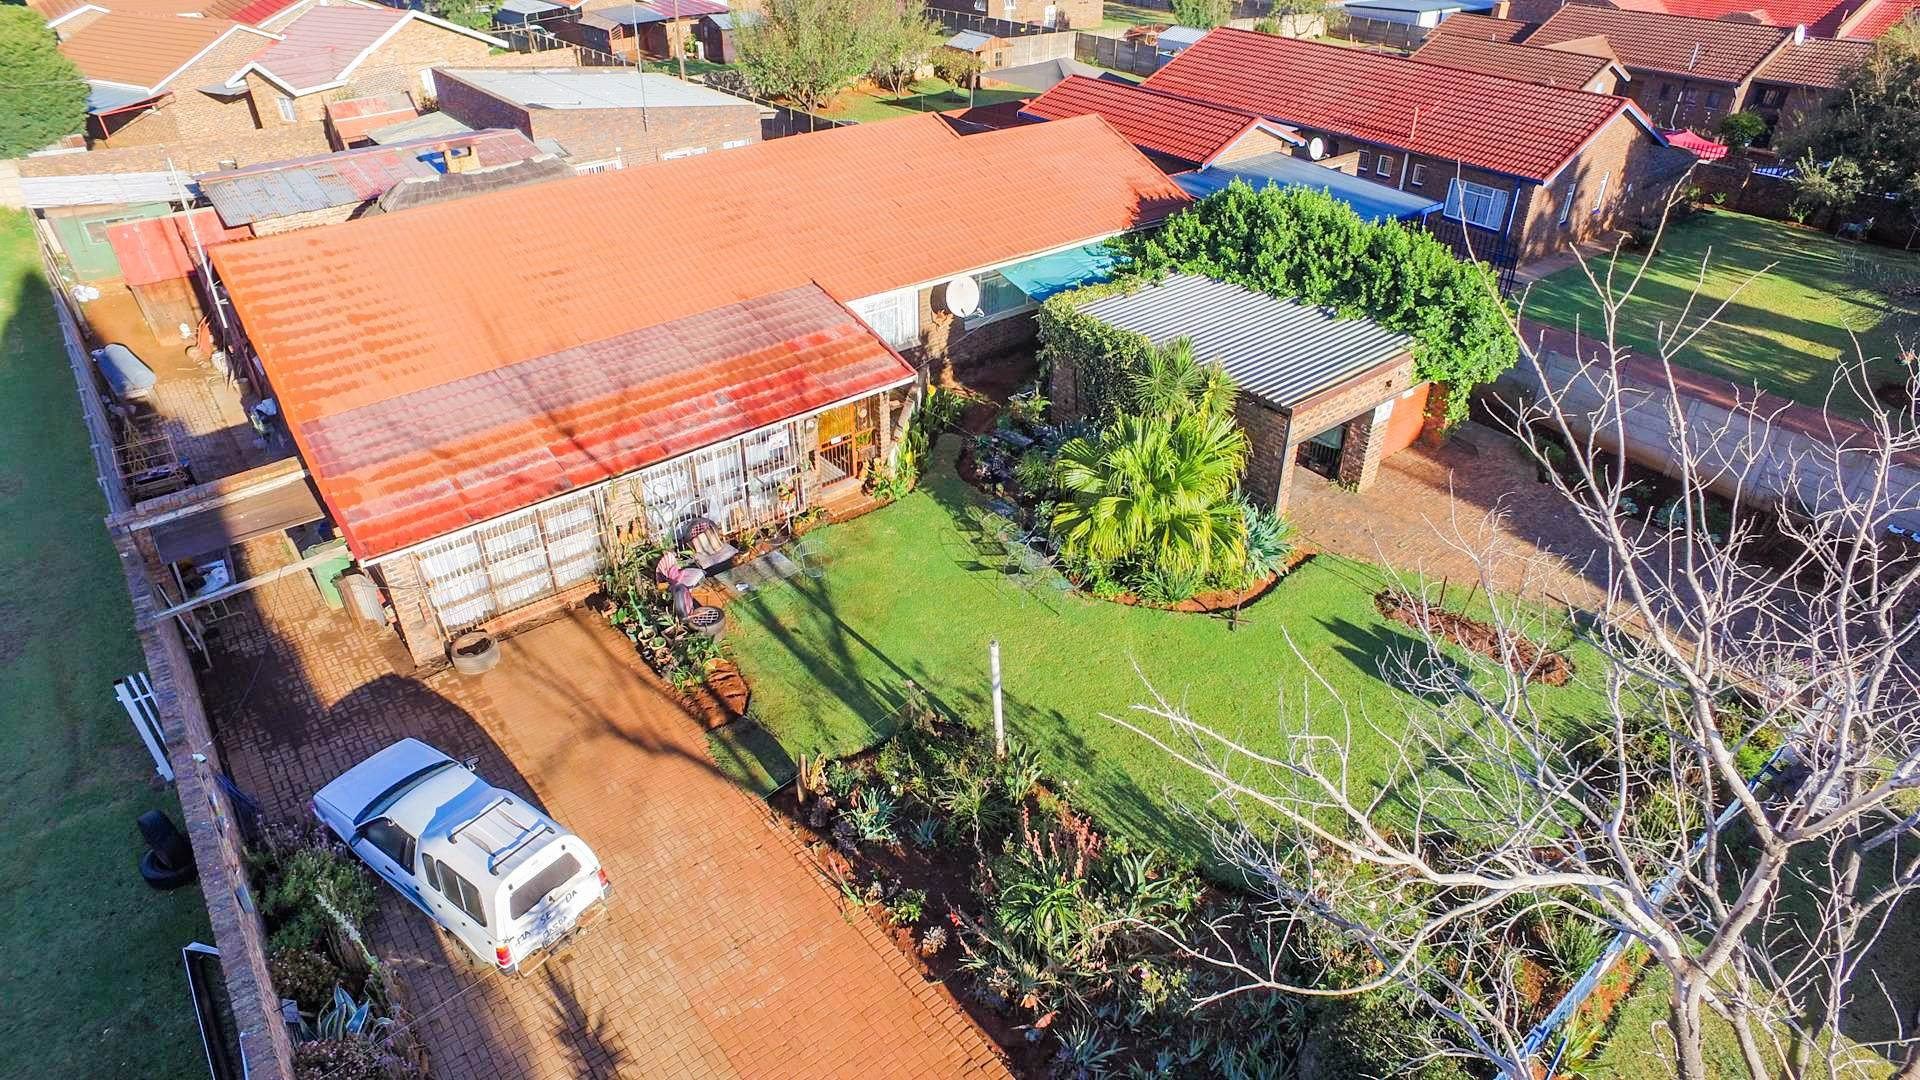 3 BedroomHouse For Sale In Dennesig